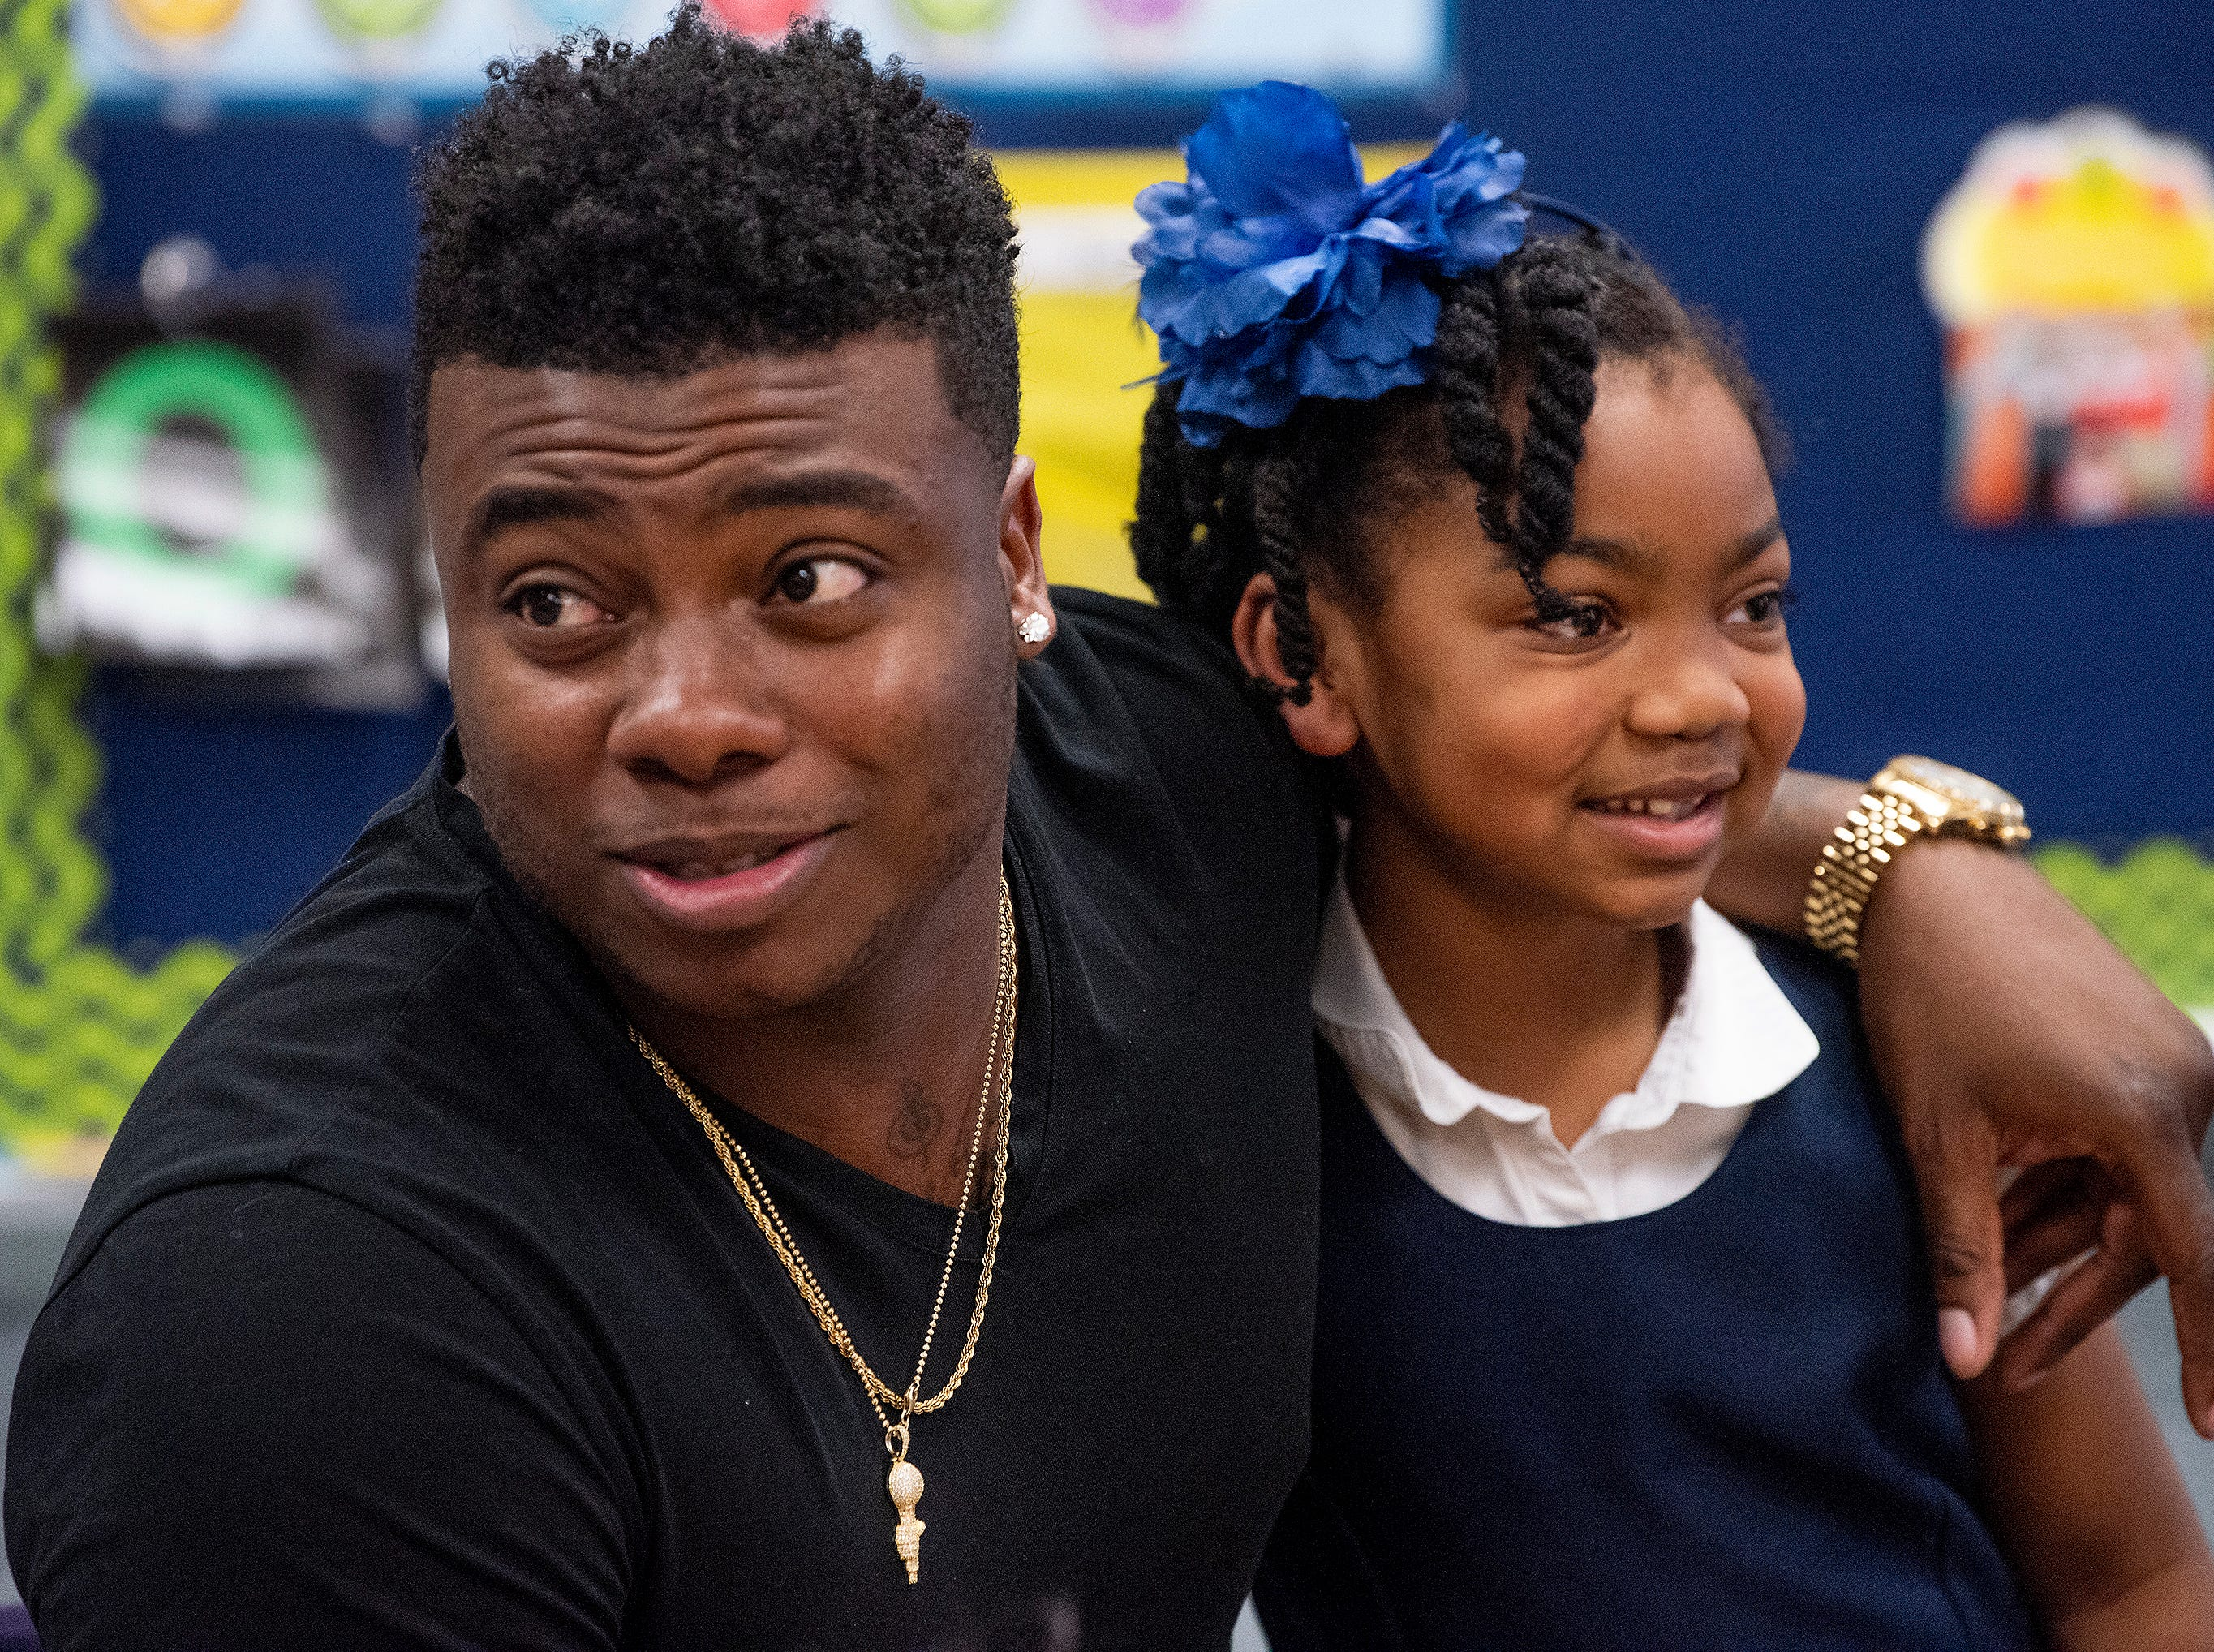 Kirk Jay, who finished third on The Voice, hangs out with fan Mckenzie Ogletree as he visits Forest Avenue School in Montgomery, Ala., on Tuesday February 5, 2019.